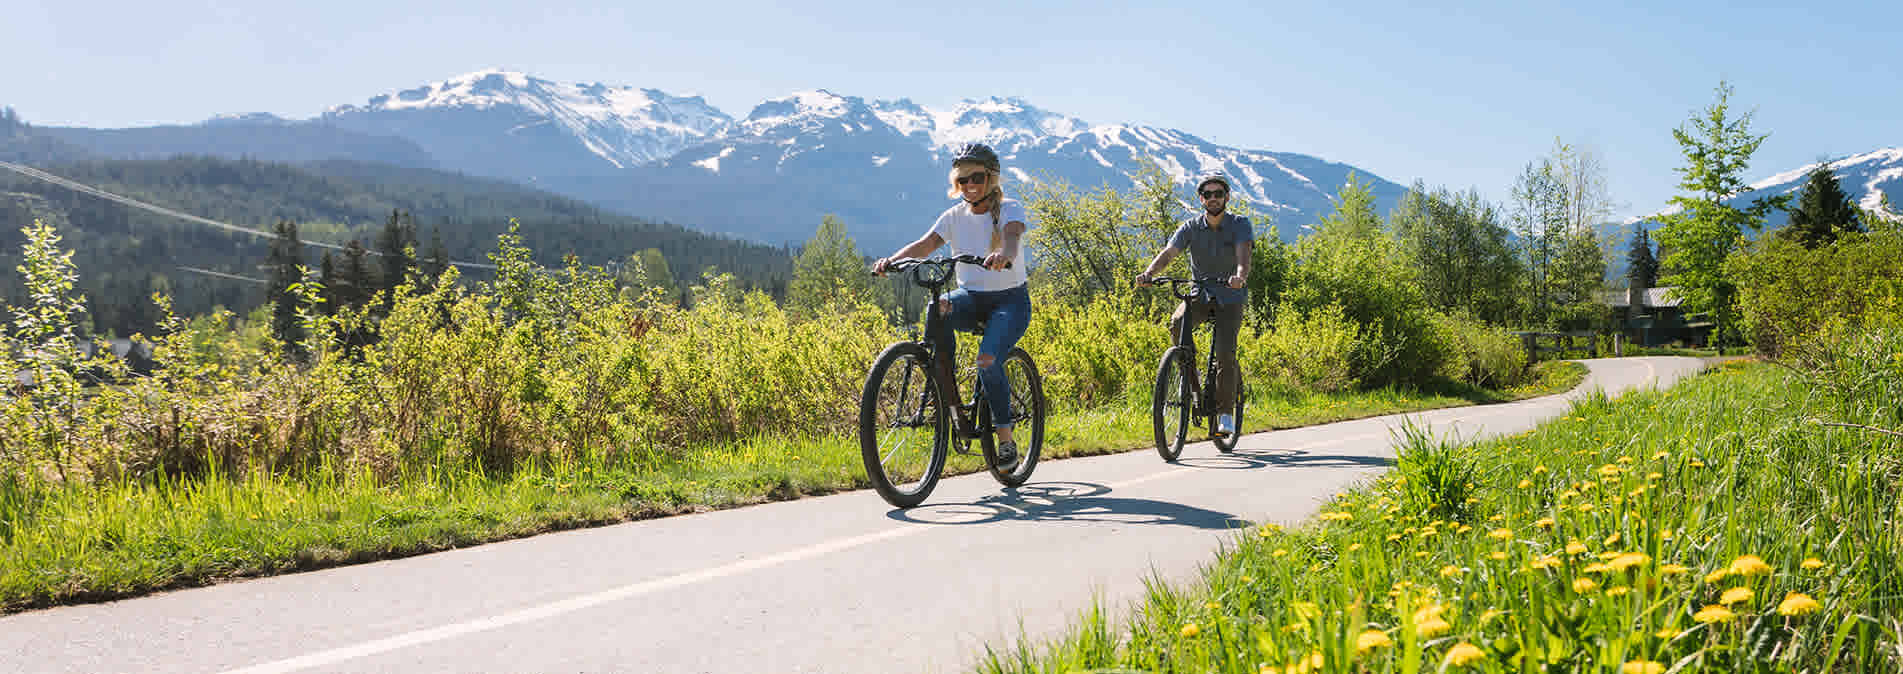 Biking on the Valley Trail in Spring in Whistler BC